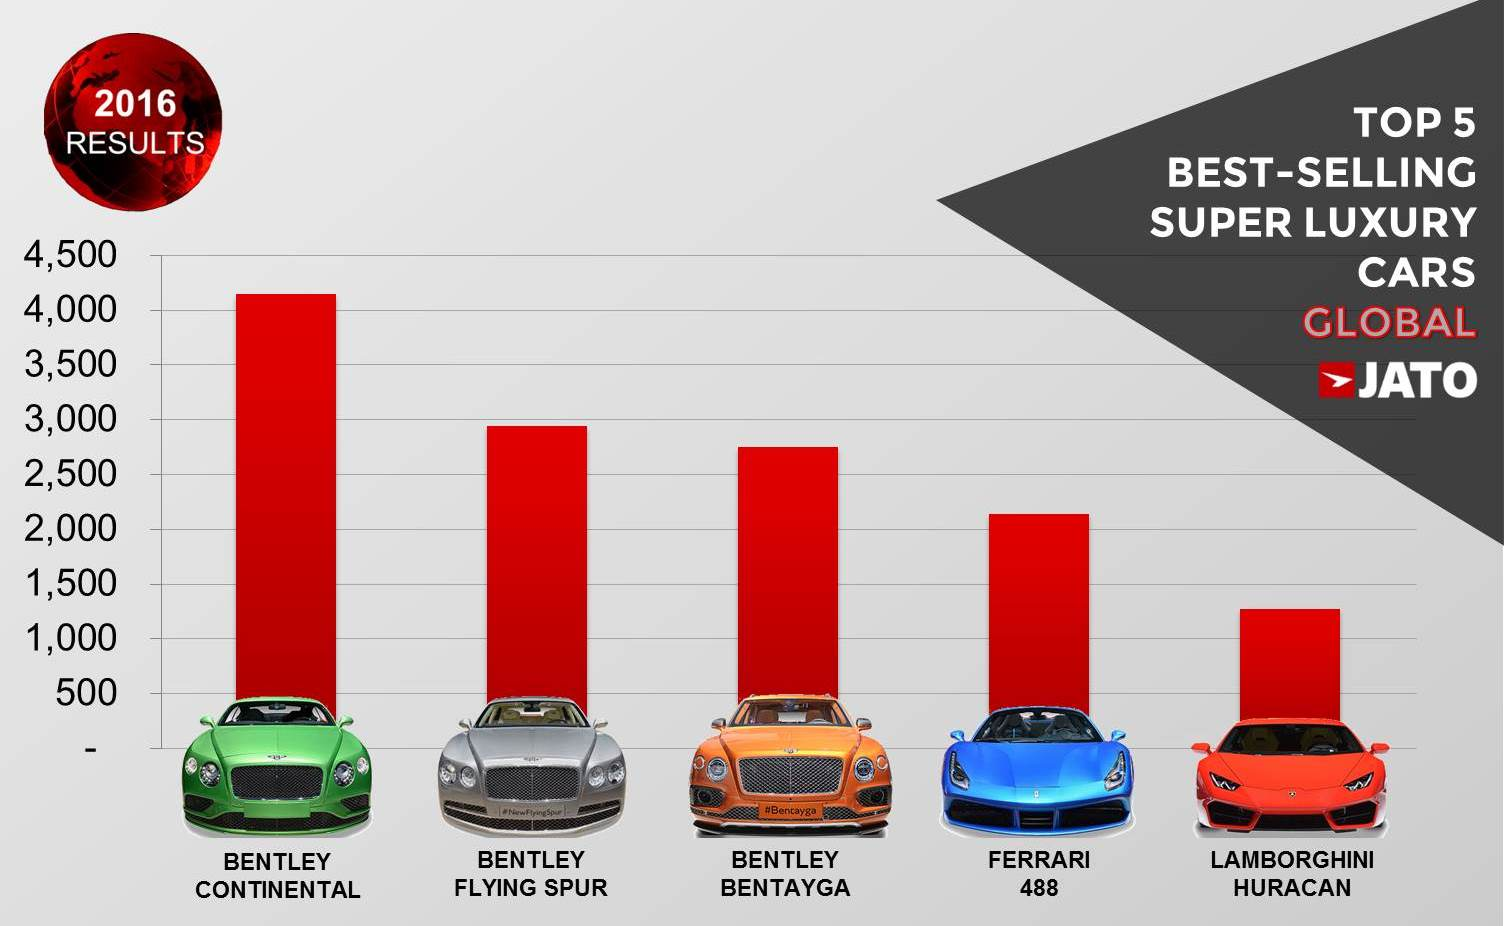 Super Luxury Car Sales Posted A Double Digit Growth As World Billionaires Expand Jato